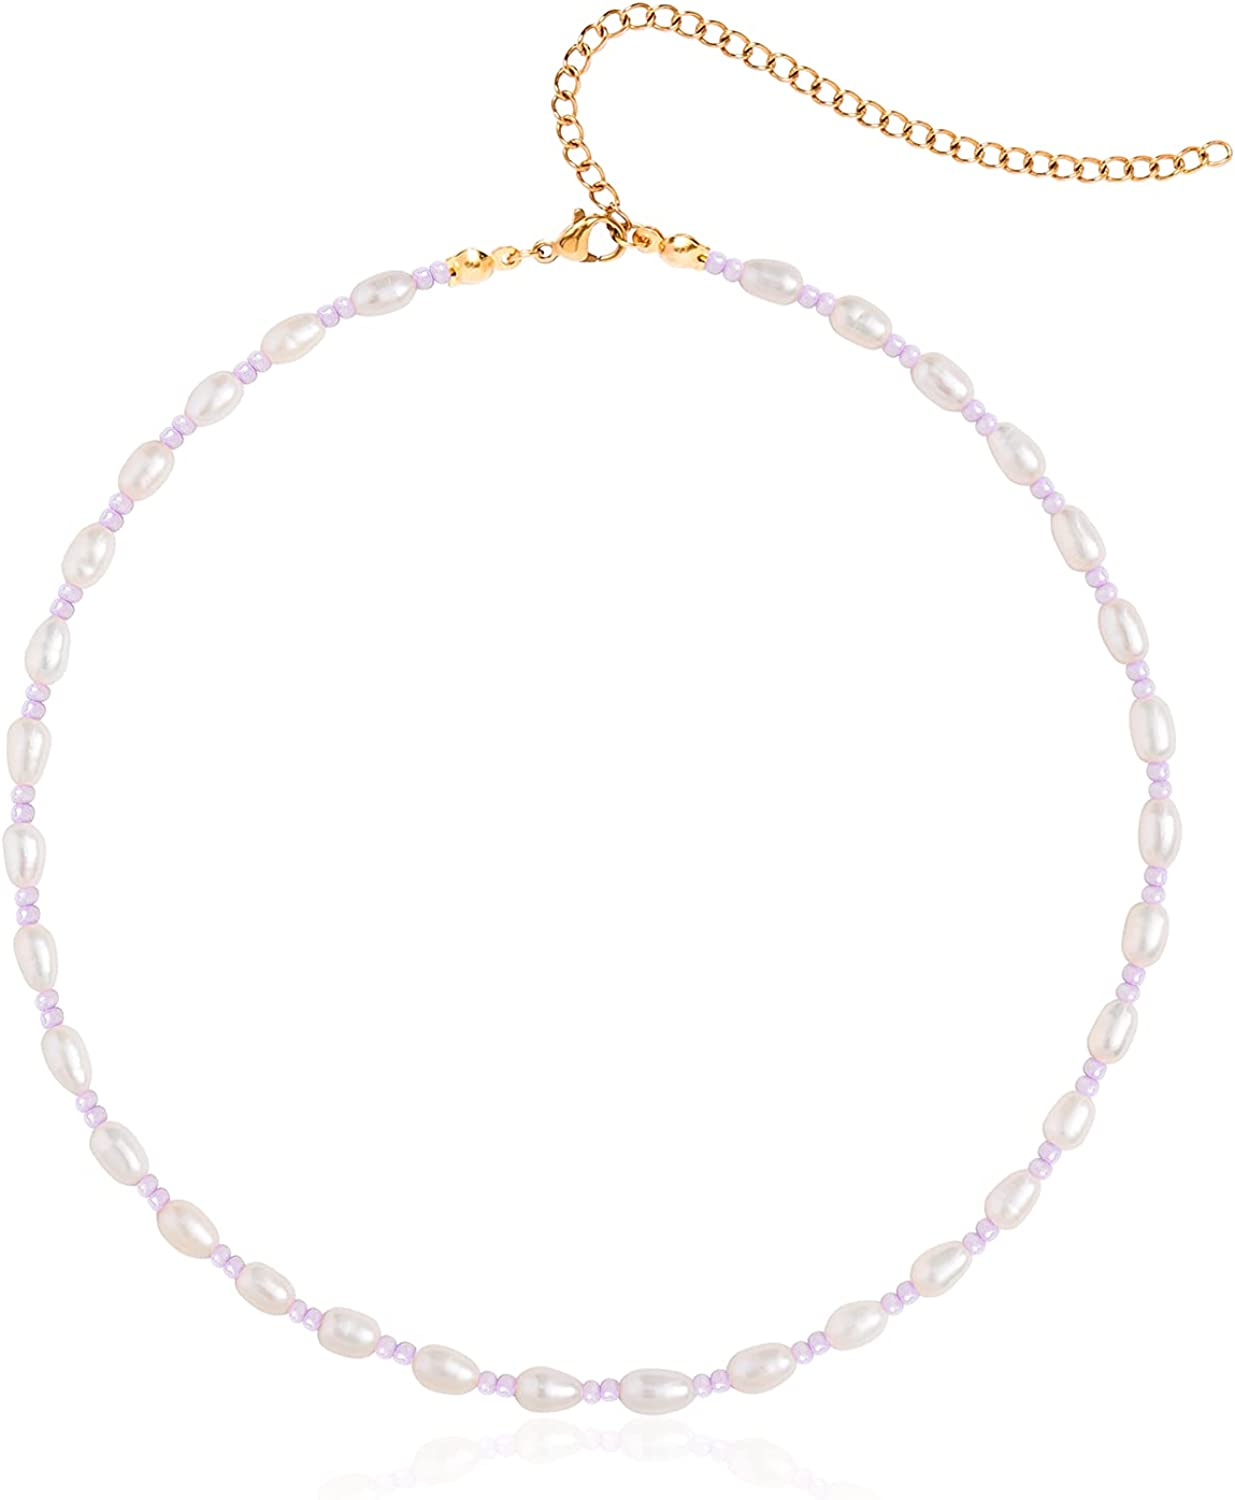 Wellike Freshwater Pearl Beaded Necklace for Women Bohemian White Daisy Flower Shell Beads Choker Necklace Seashell Stainless Steel 18K Gold Plated Extension Chain Necklace Vintage Elegant Women Jewelry Gift